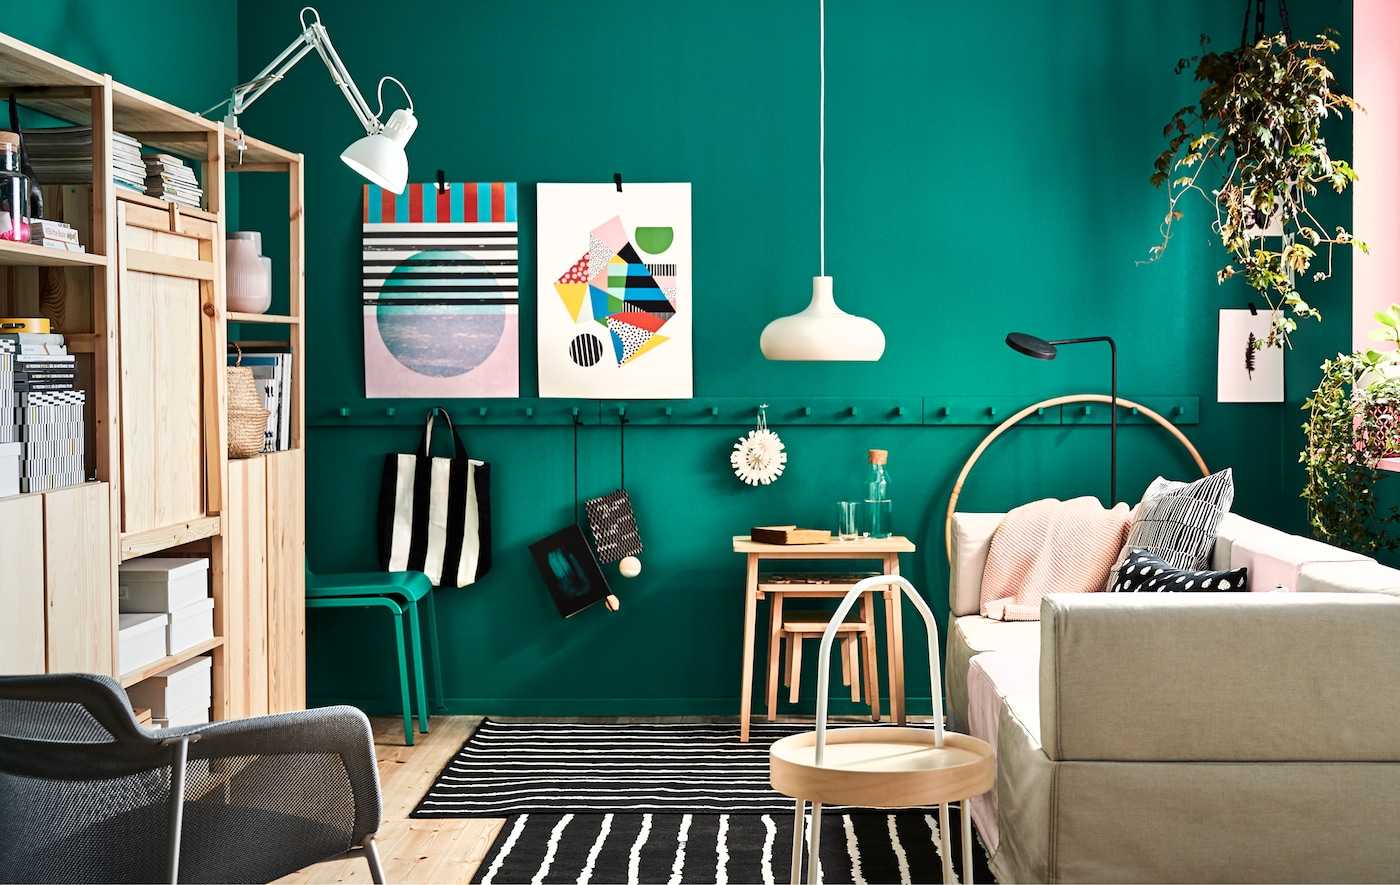 Encourage play while staying true to your own style. Here we show you how to create a flexible small space living room using smart solutions that the kids won't outgrow in a couple of months.